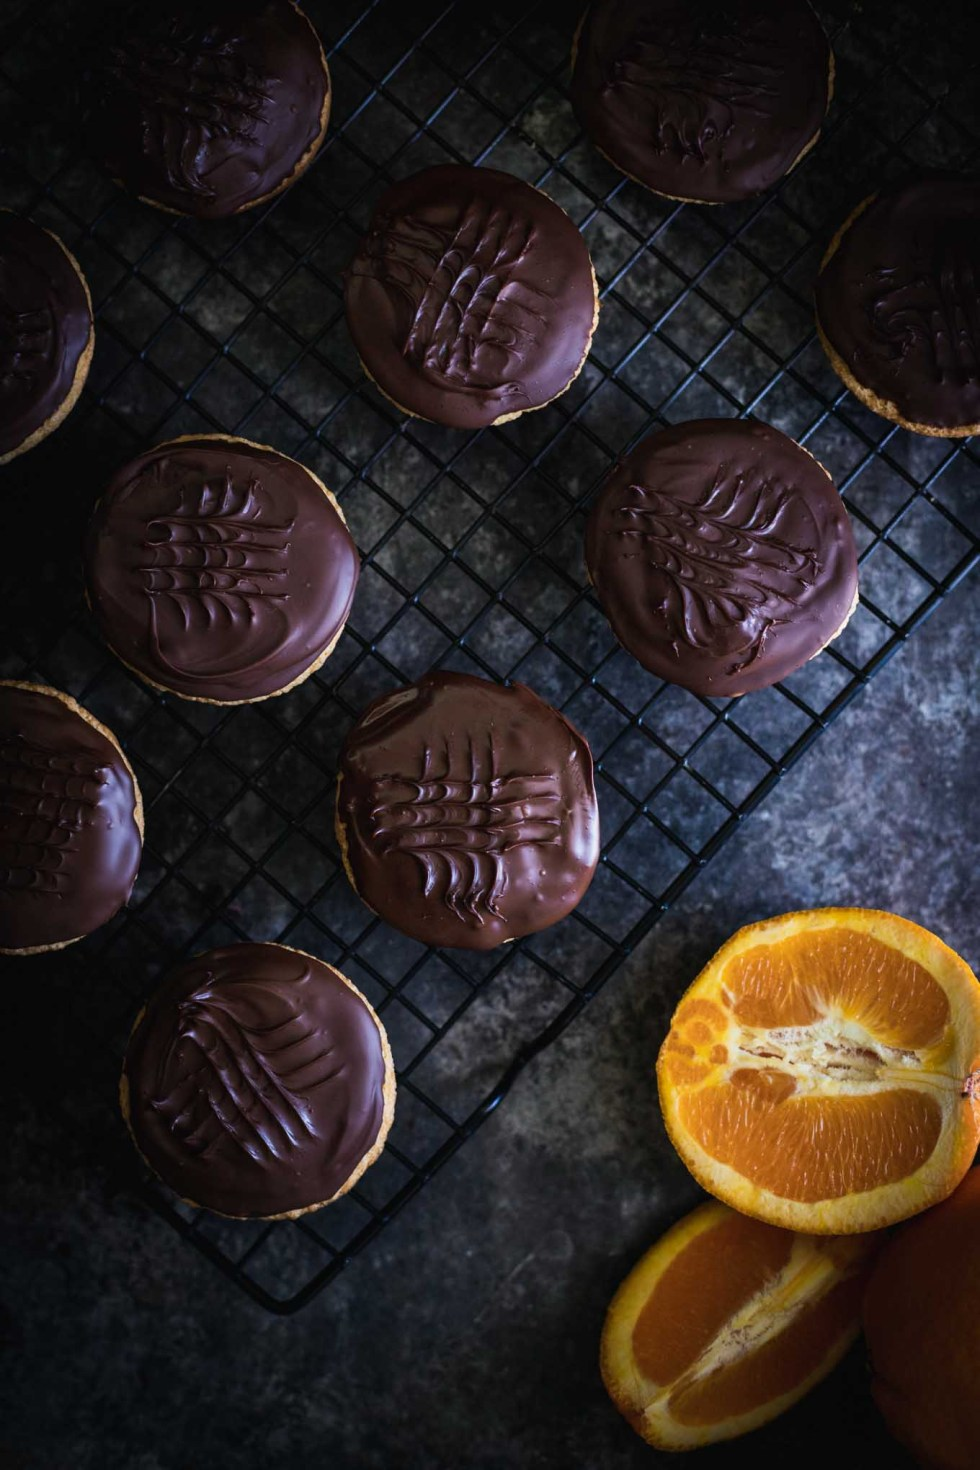 Sponge cake topped with orange jelly and semi-sweet chocolate! I fell in love with Jaffa Cakes while watching the Great British Baking Show and developed equivalent american measurements!